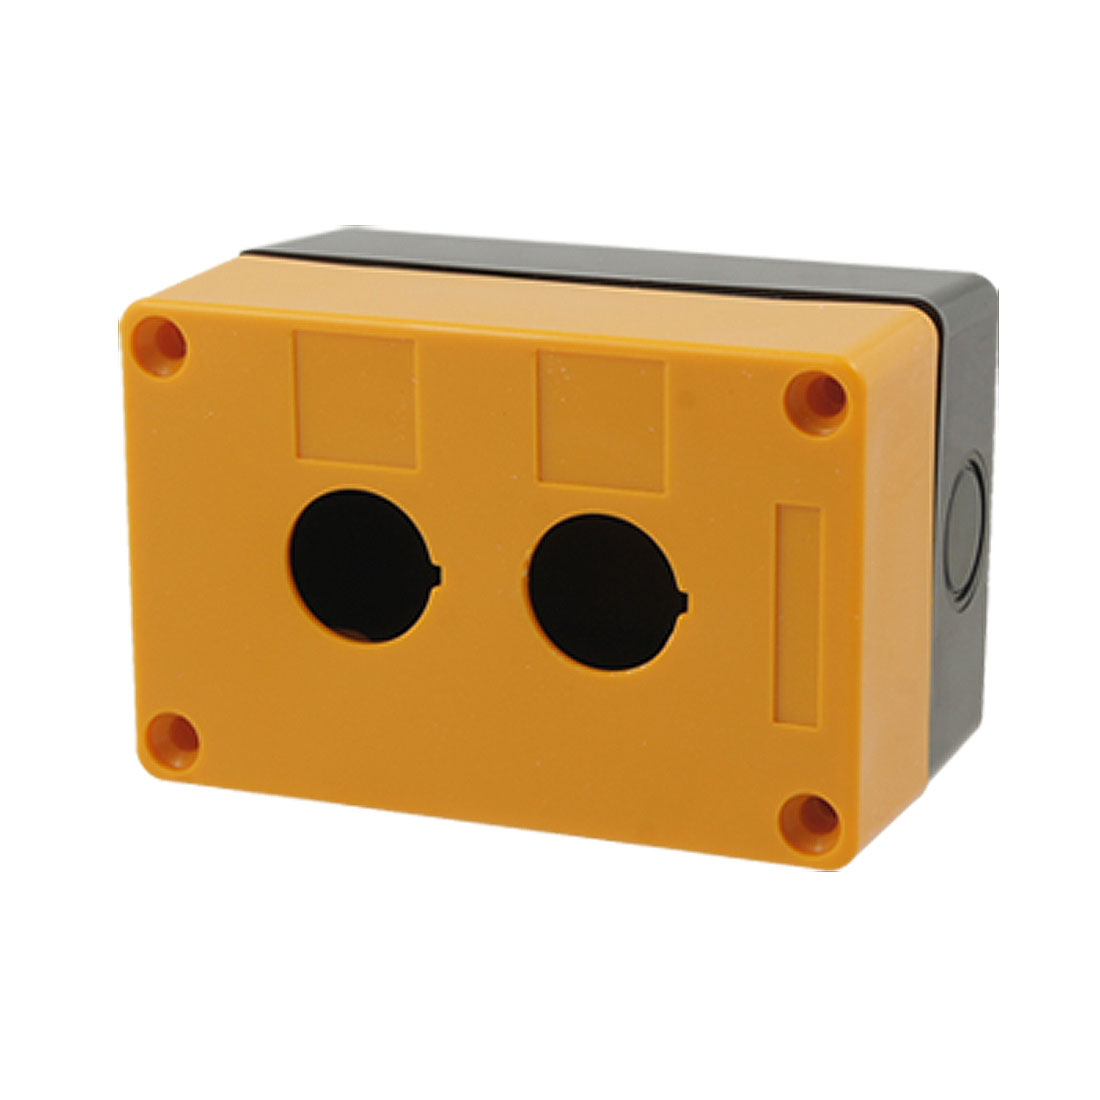 Control Station Yellow Black 2 Pushbutton Switch Box Case